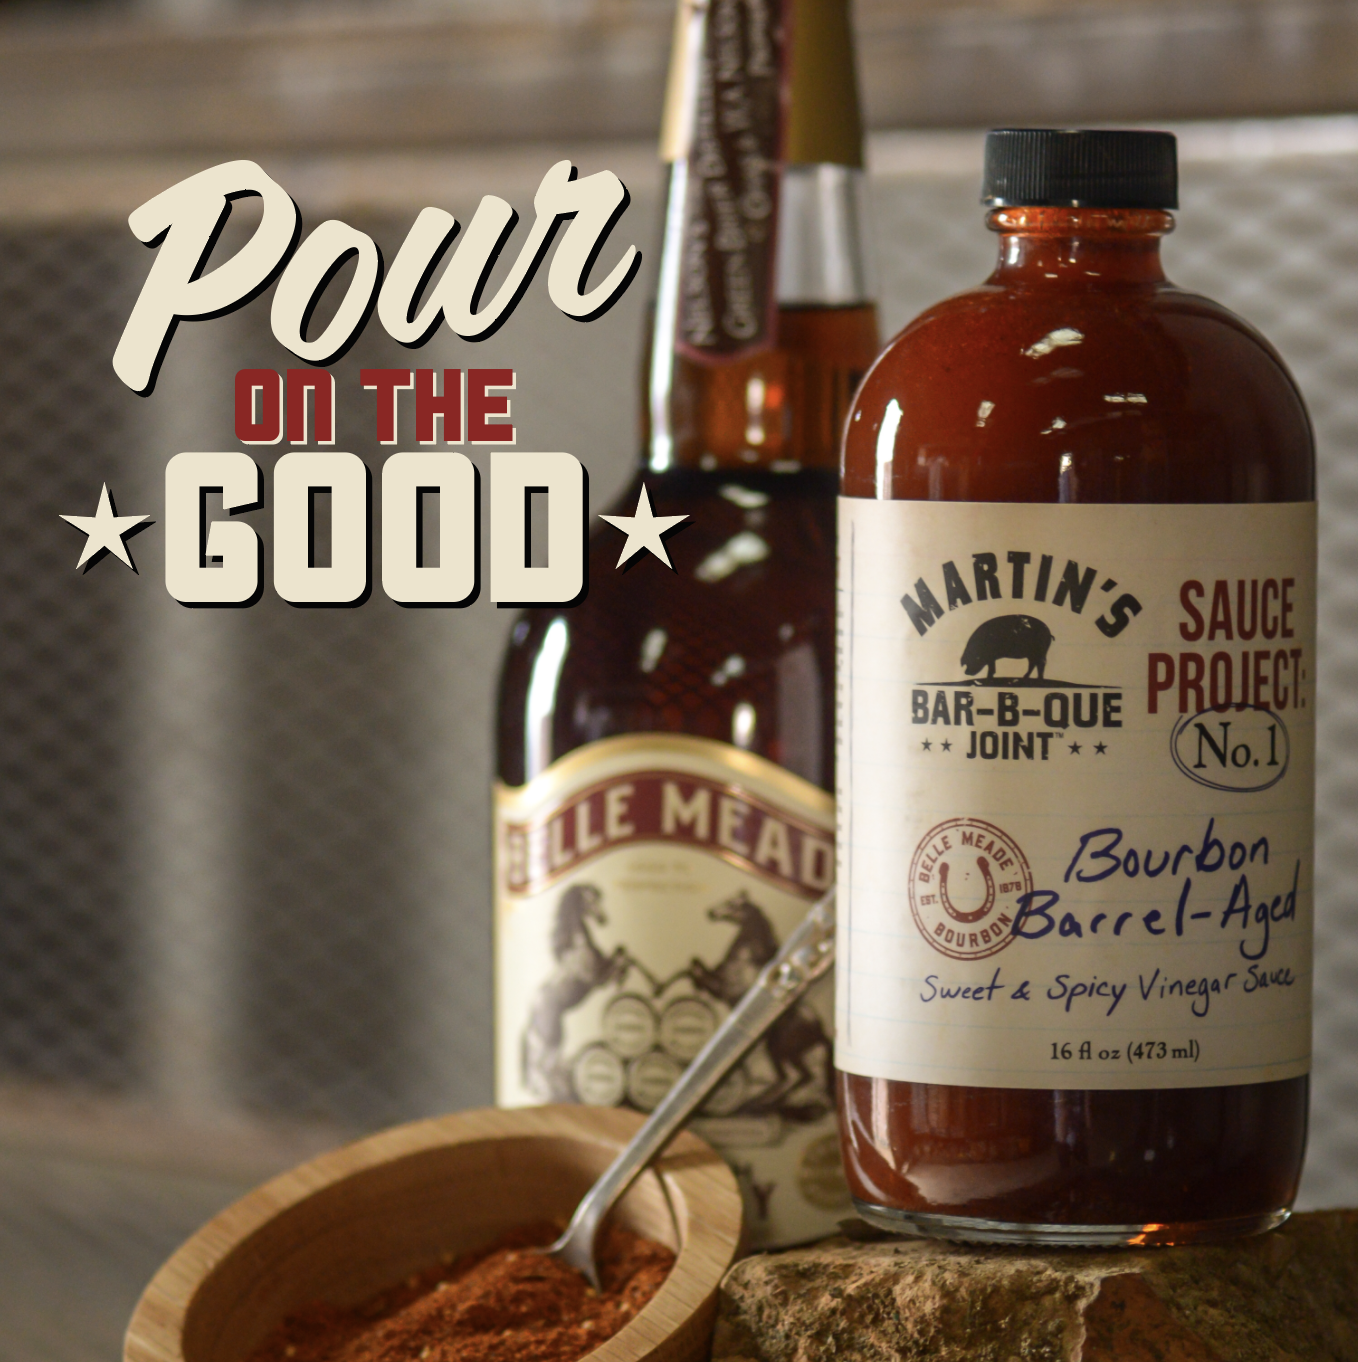 Pour on the GOOD with Martin's Sauce Project: No. 1